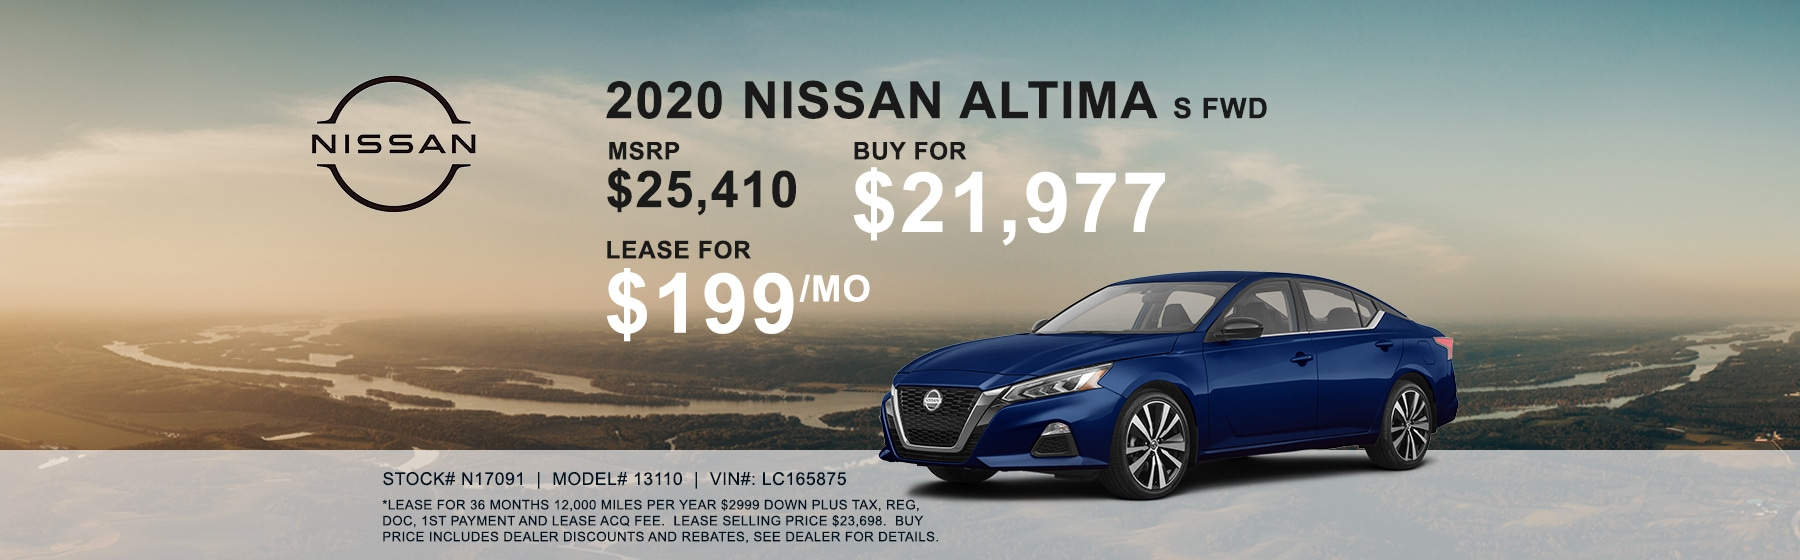 2020 Nissan Altima S FWD Lease for $199 per month